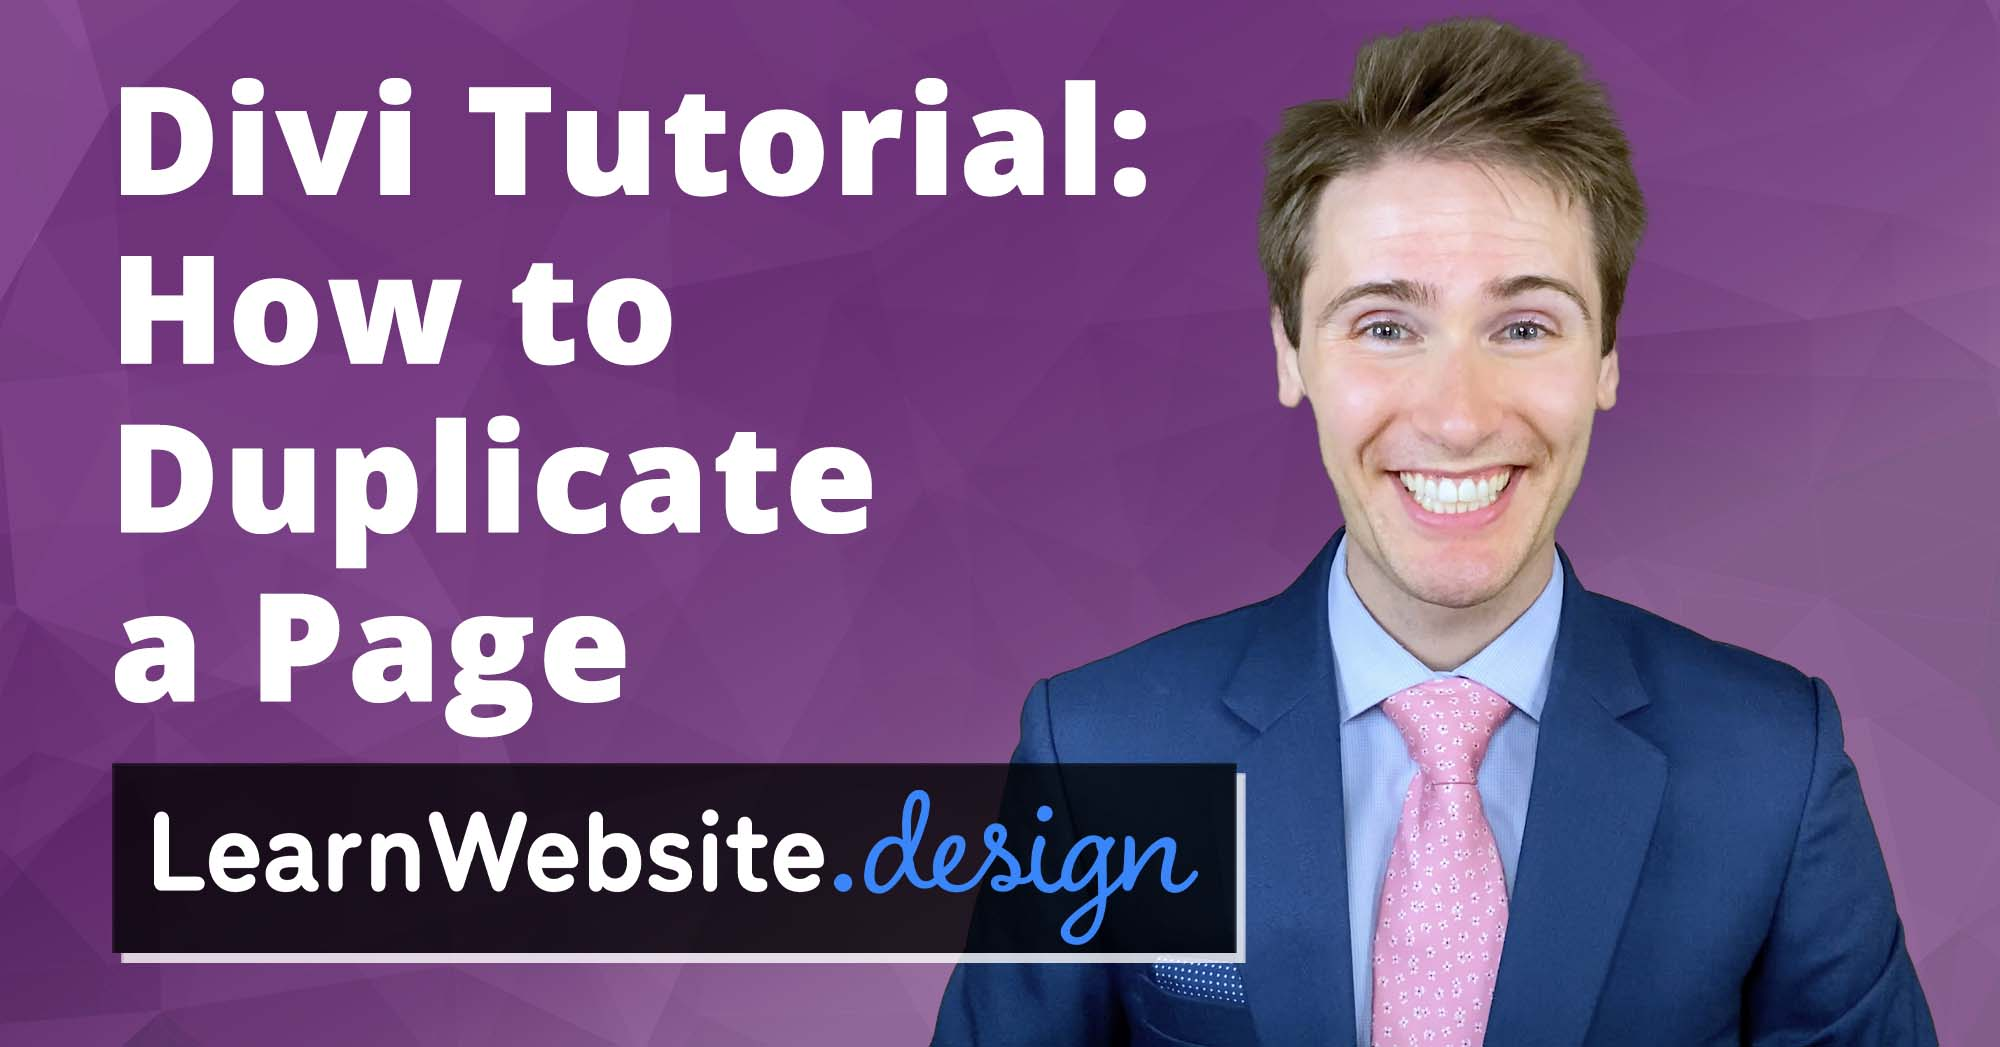 Divi How to Duplicate a Page Tutorial